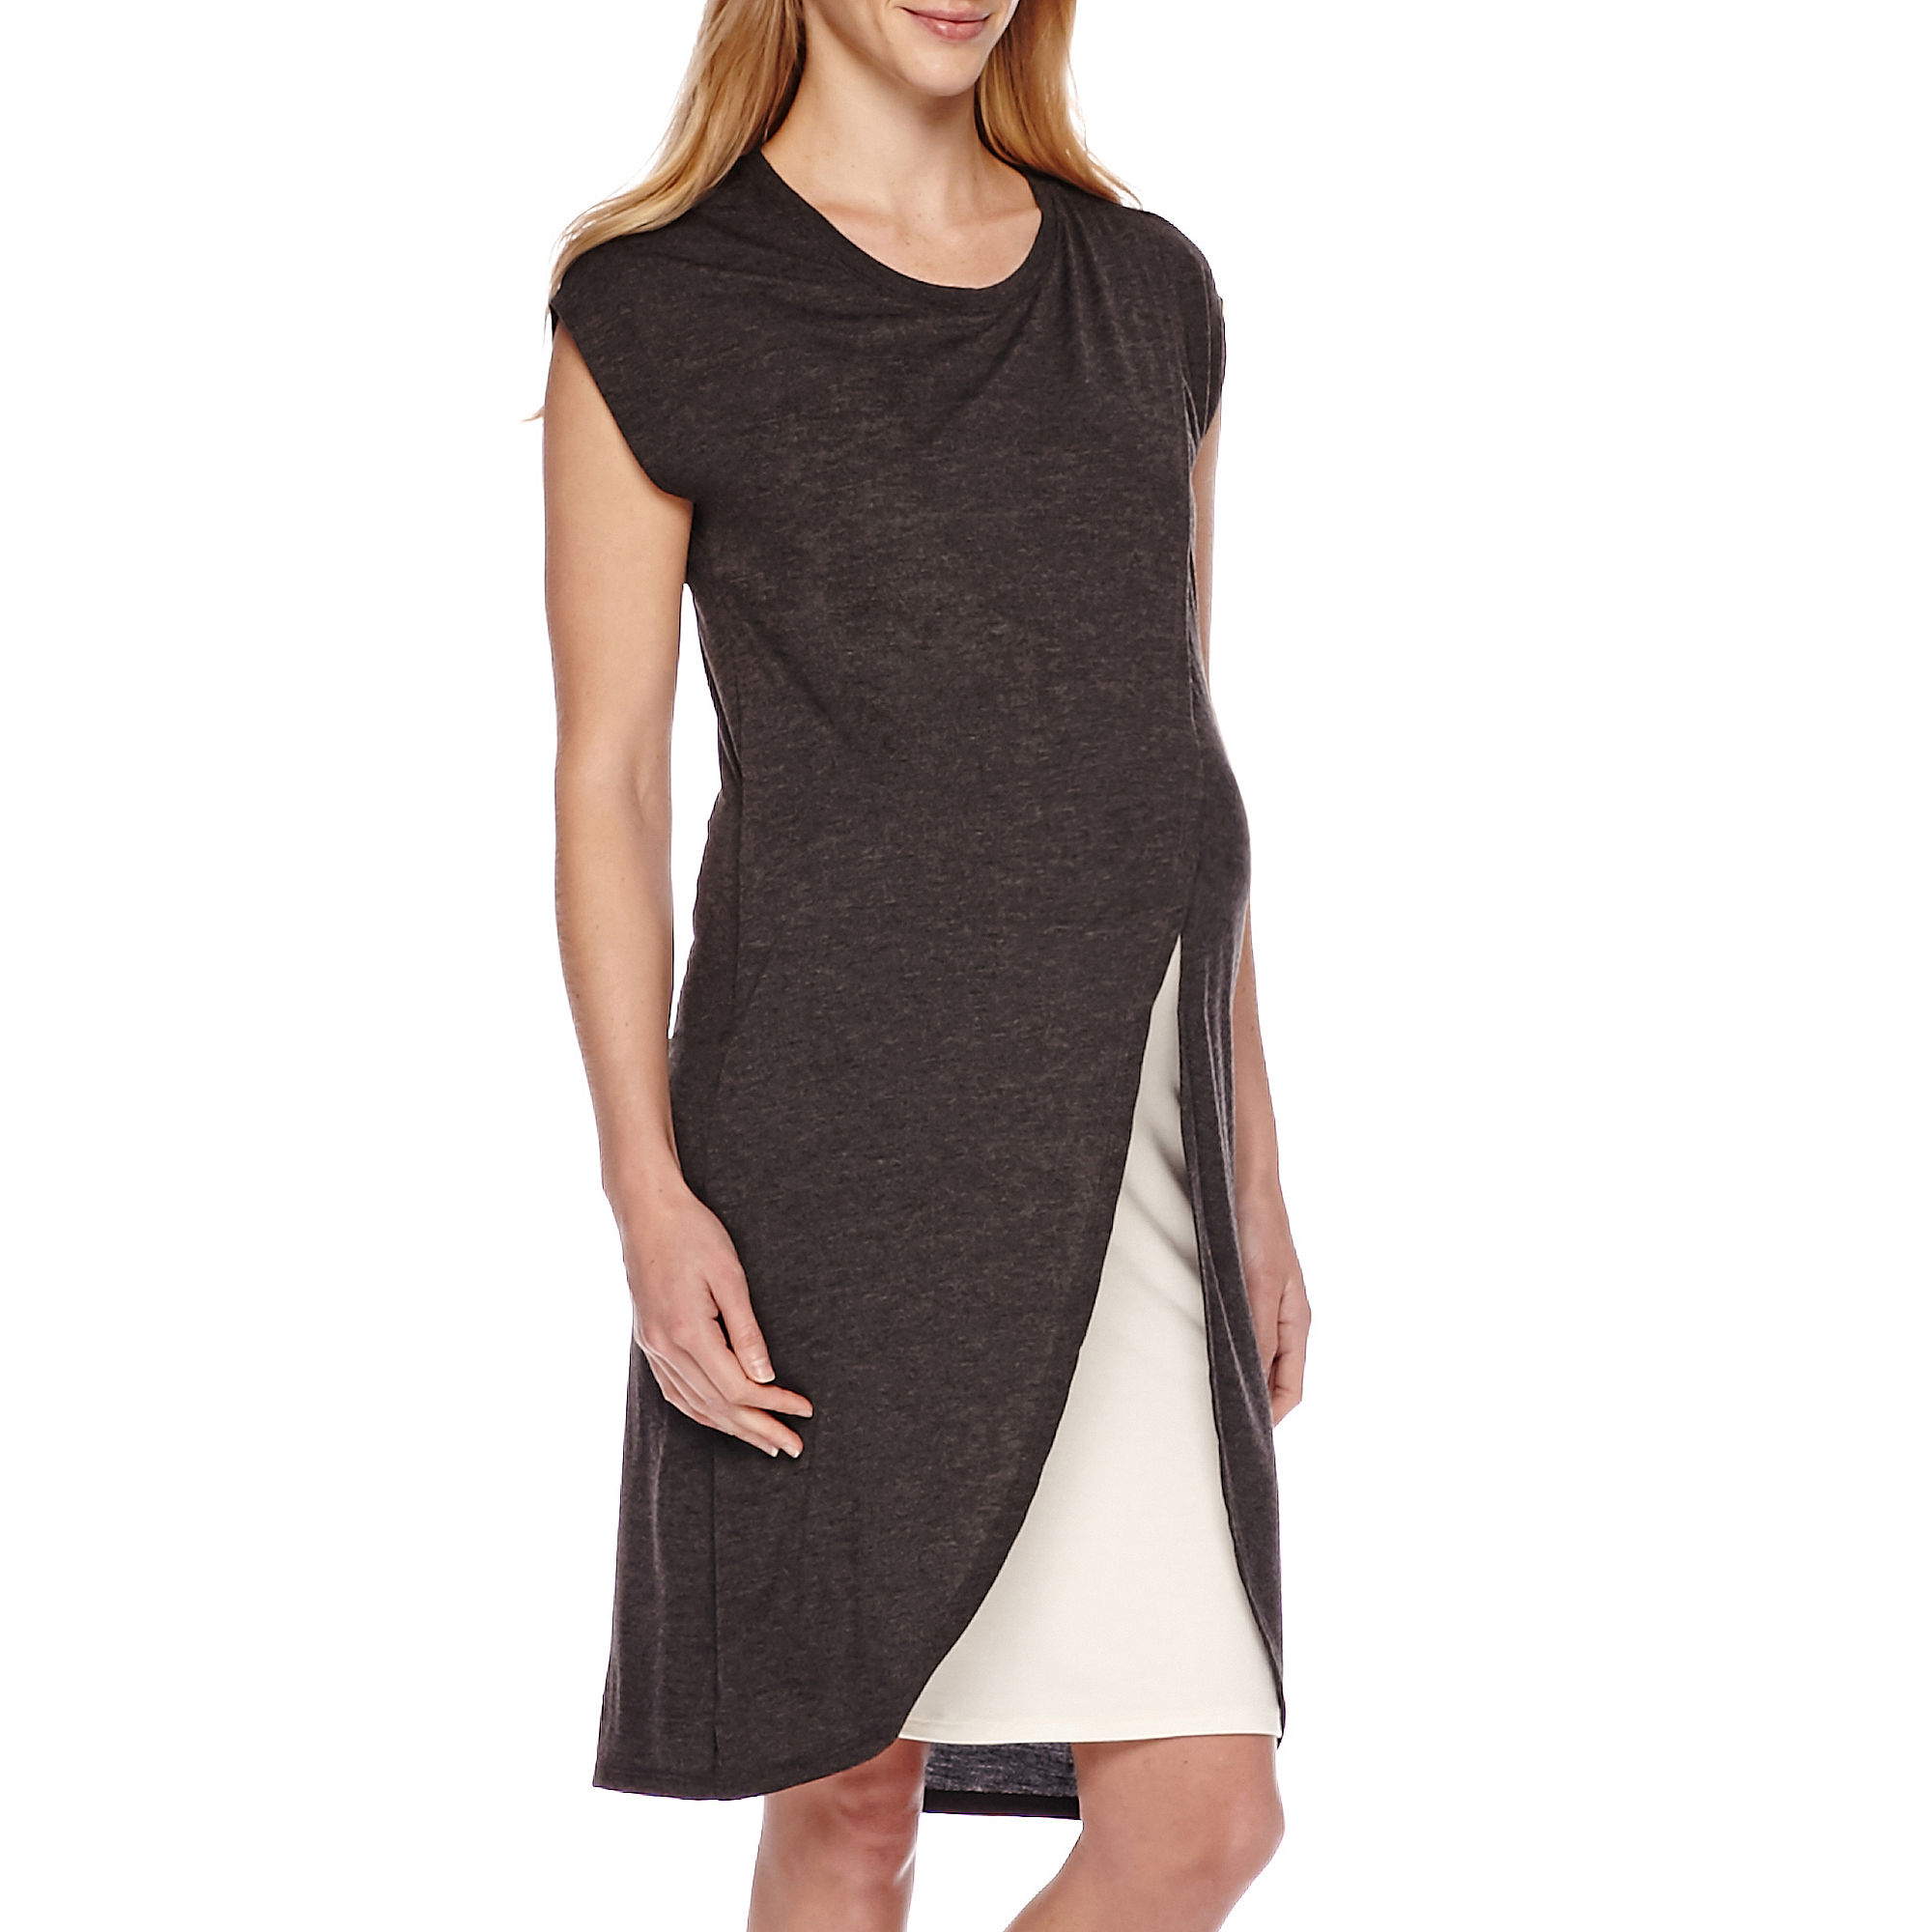 Maternity Cross-Over Cotton Nursing Dress - Plus plus size,  plus size fashion plus size appare